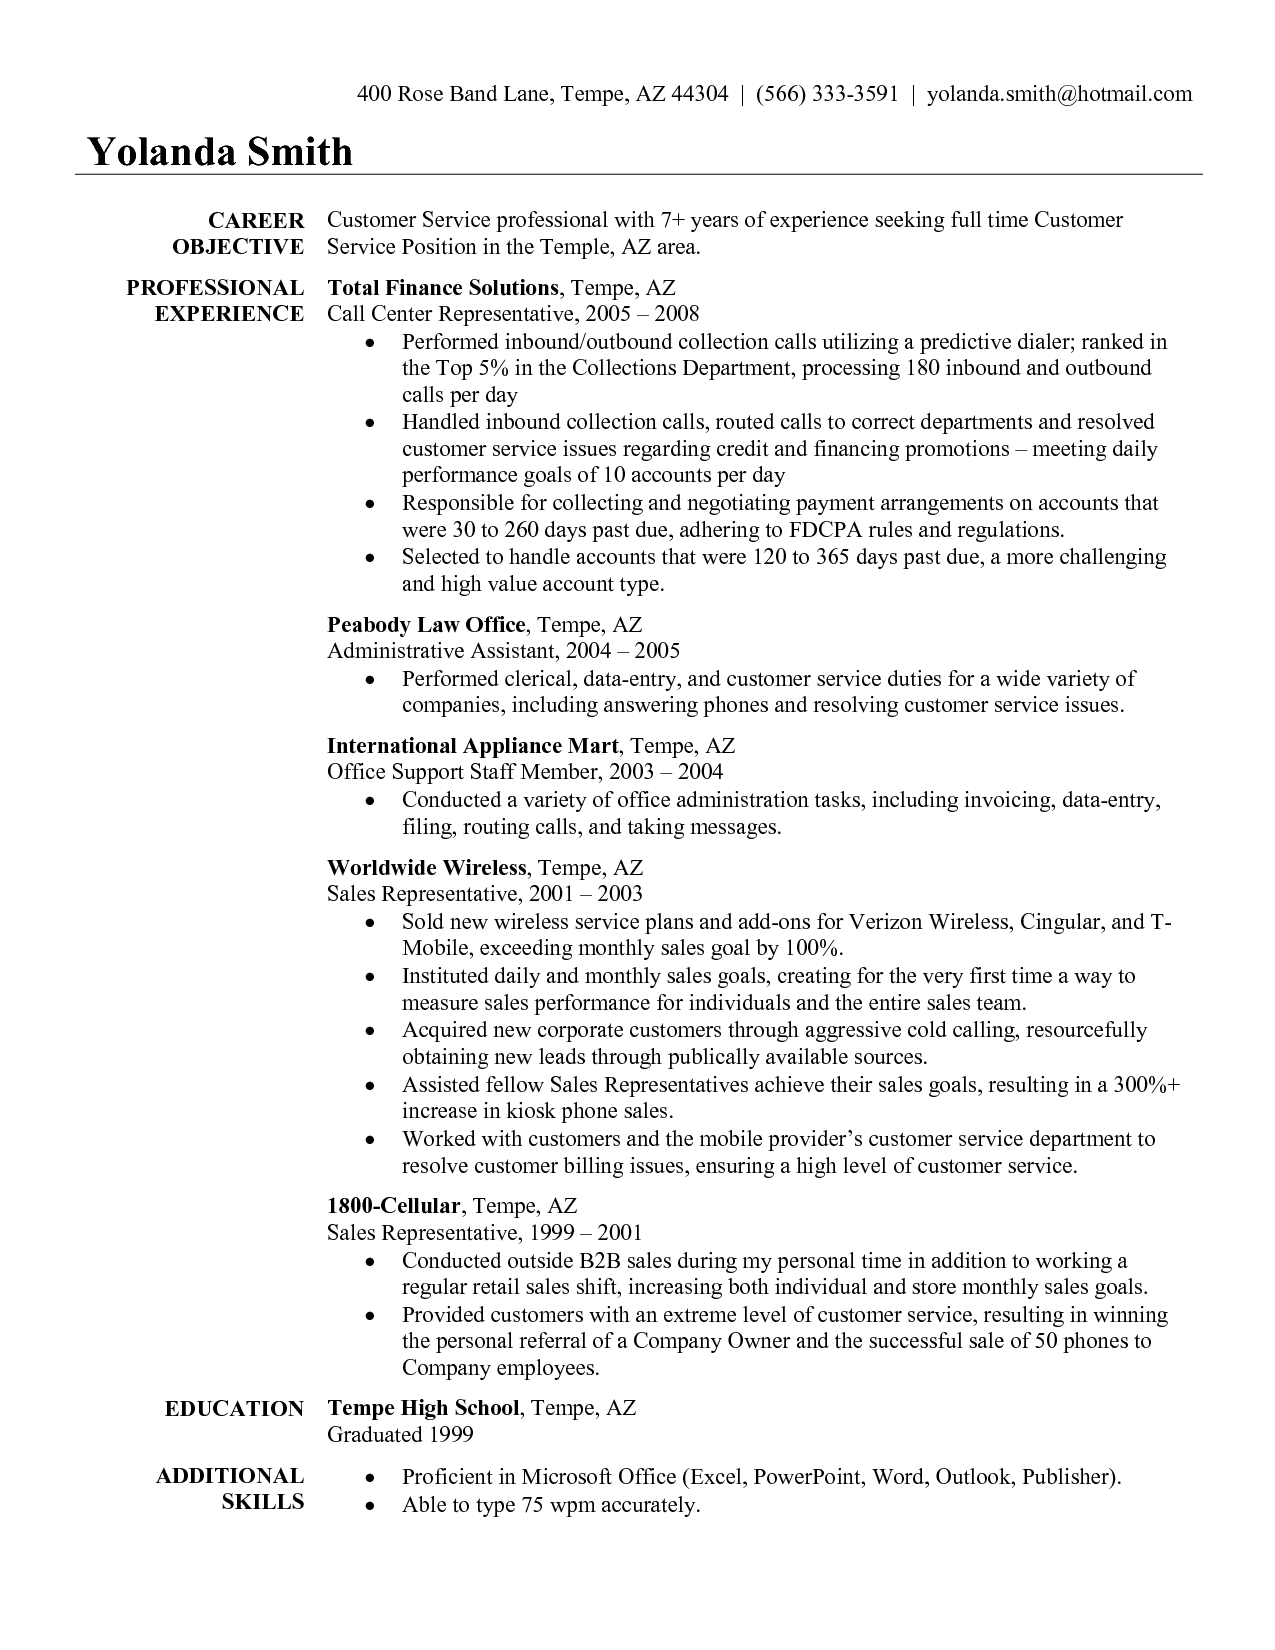 Resume Objective Example For Customer Service Traffic Customer Resume Examplescustomer Service Resume Examples .